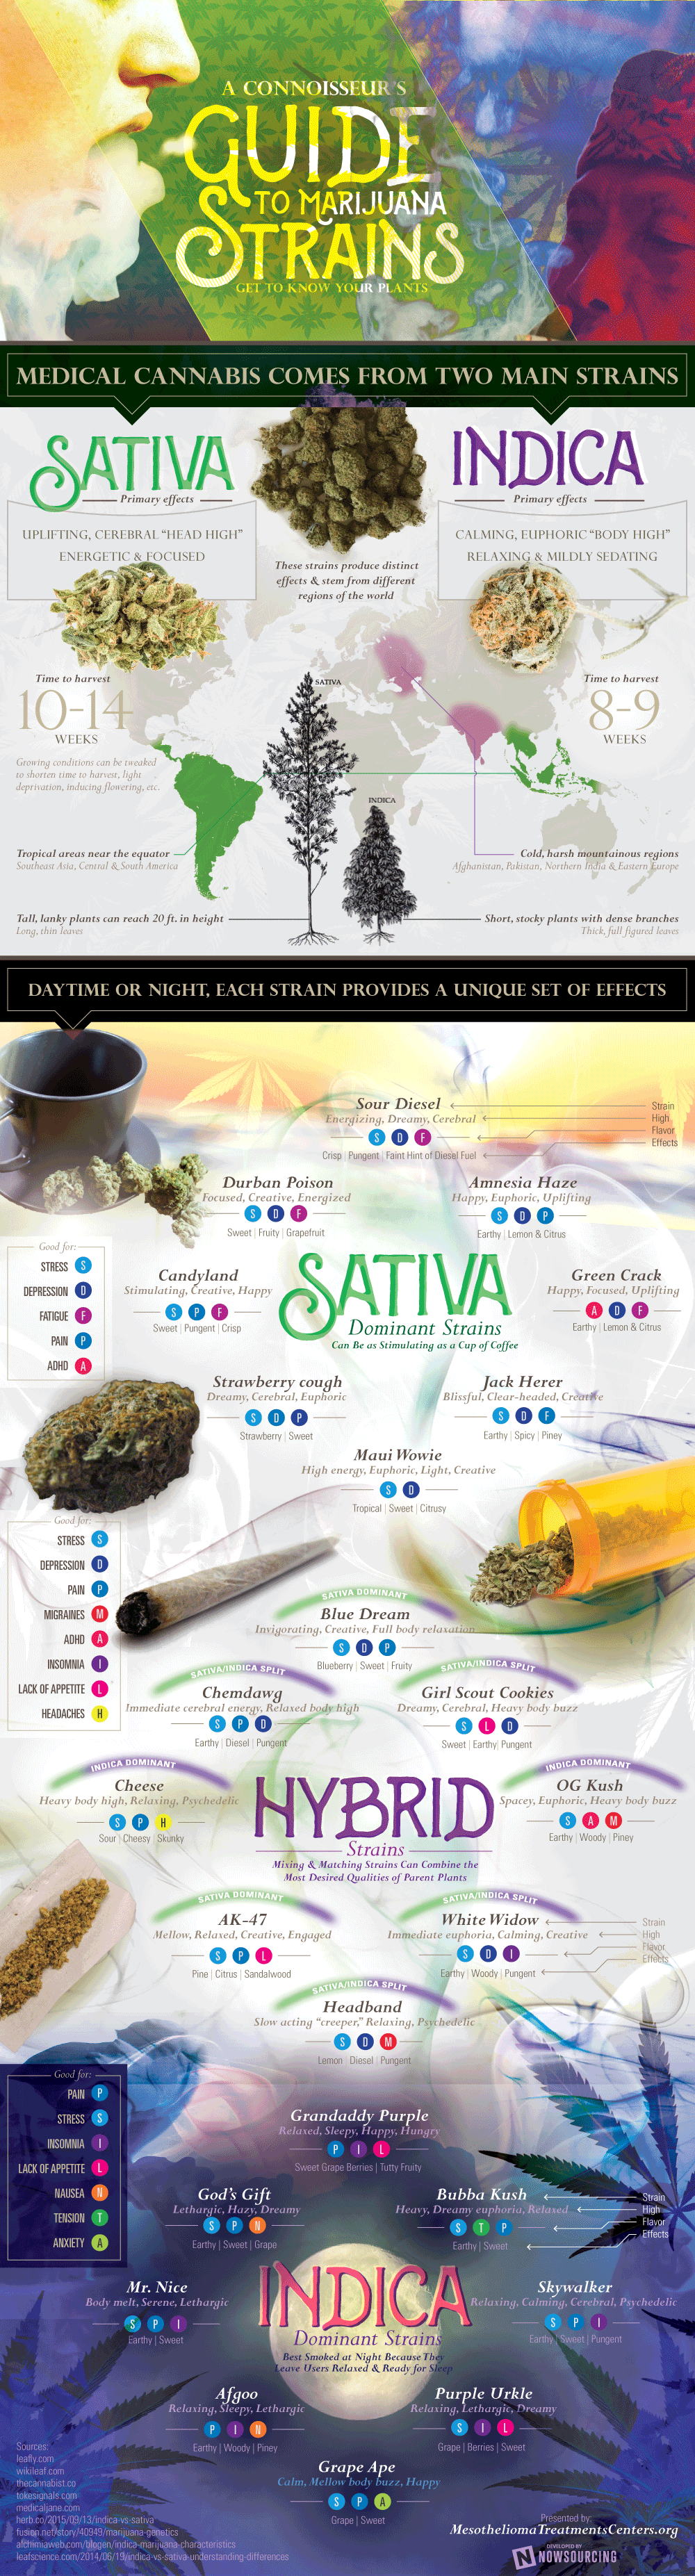 Guide to Knowing Marijuna Strains [Infographic]